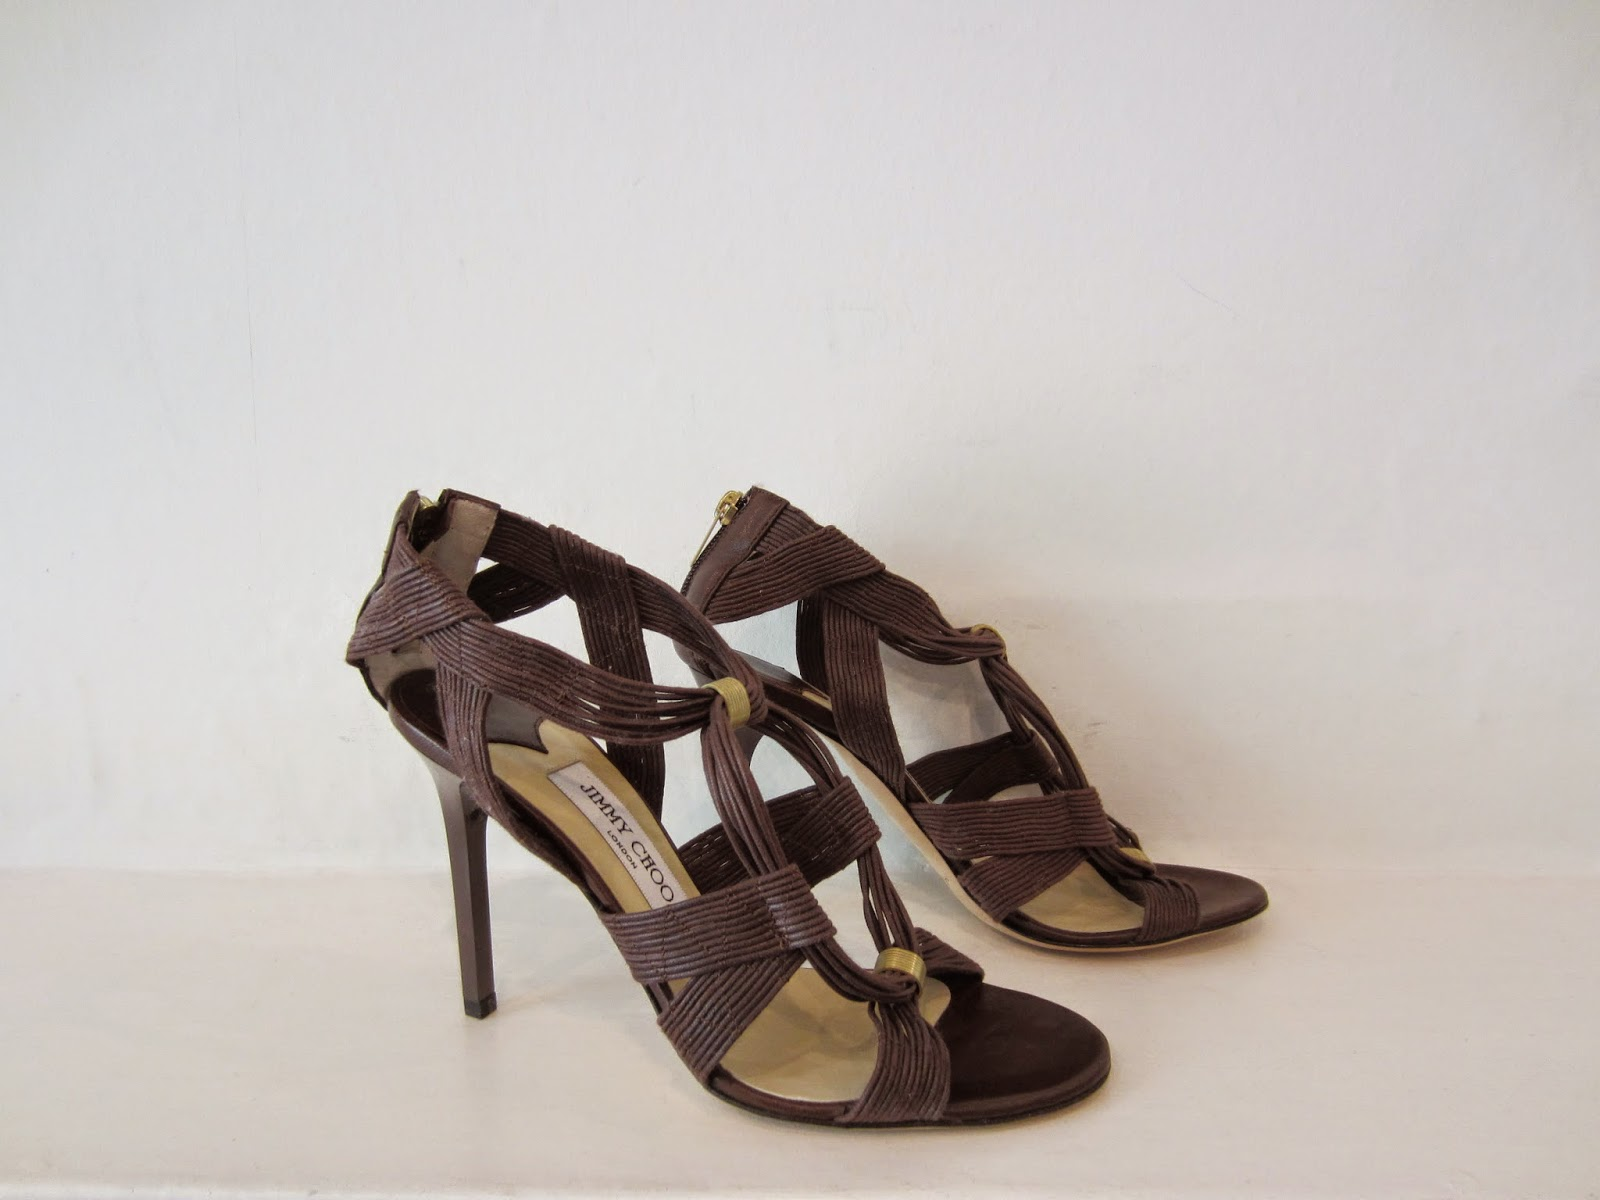 Jimmy Choo Brown Leather Strappy Sandals